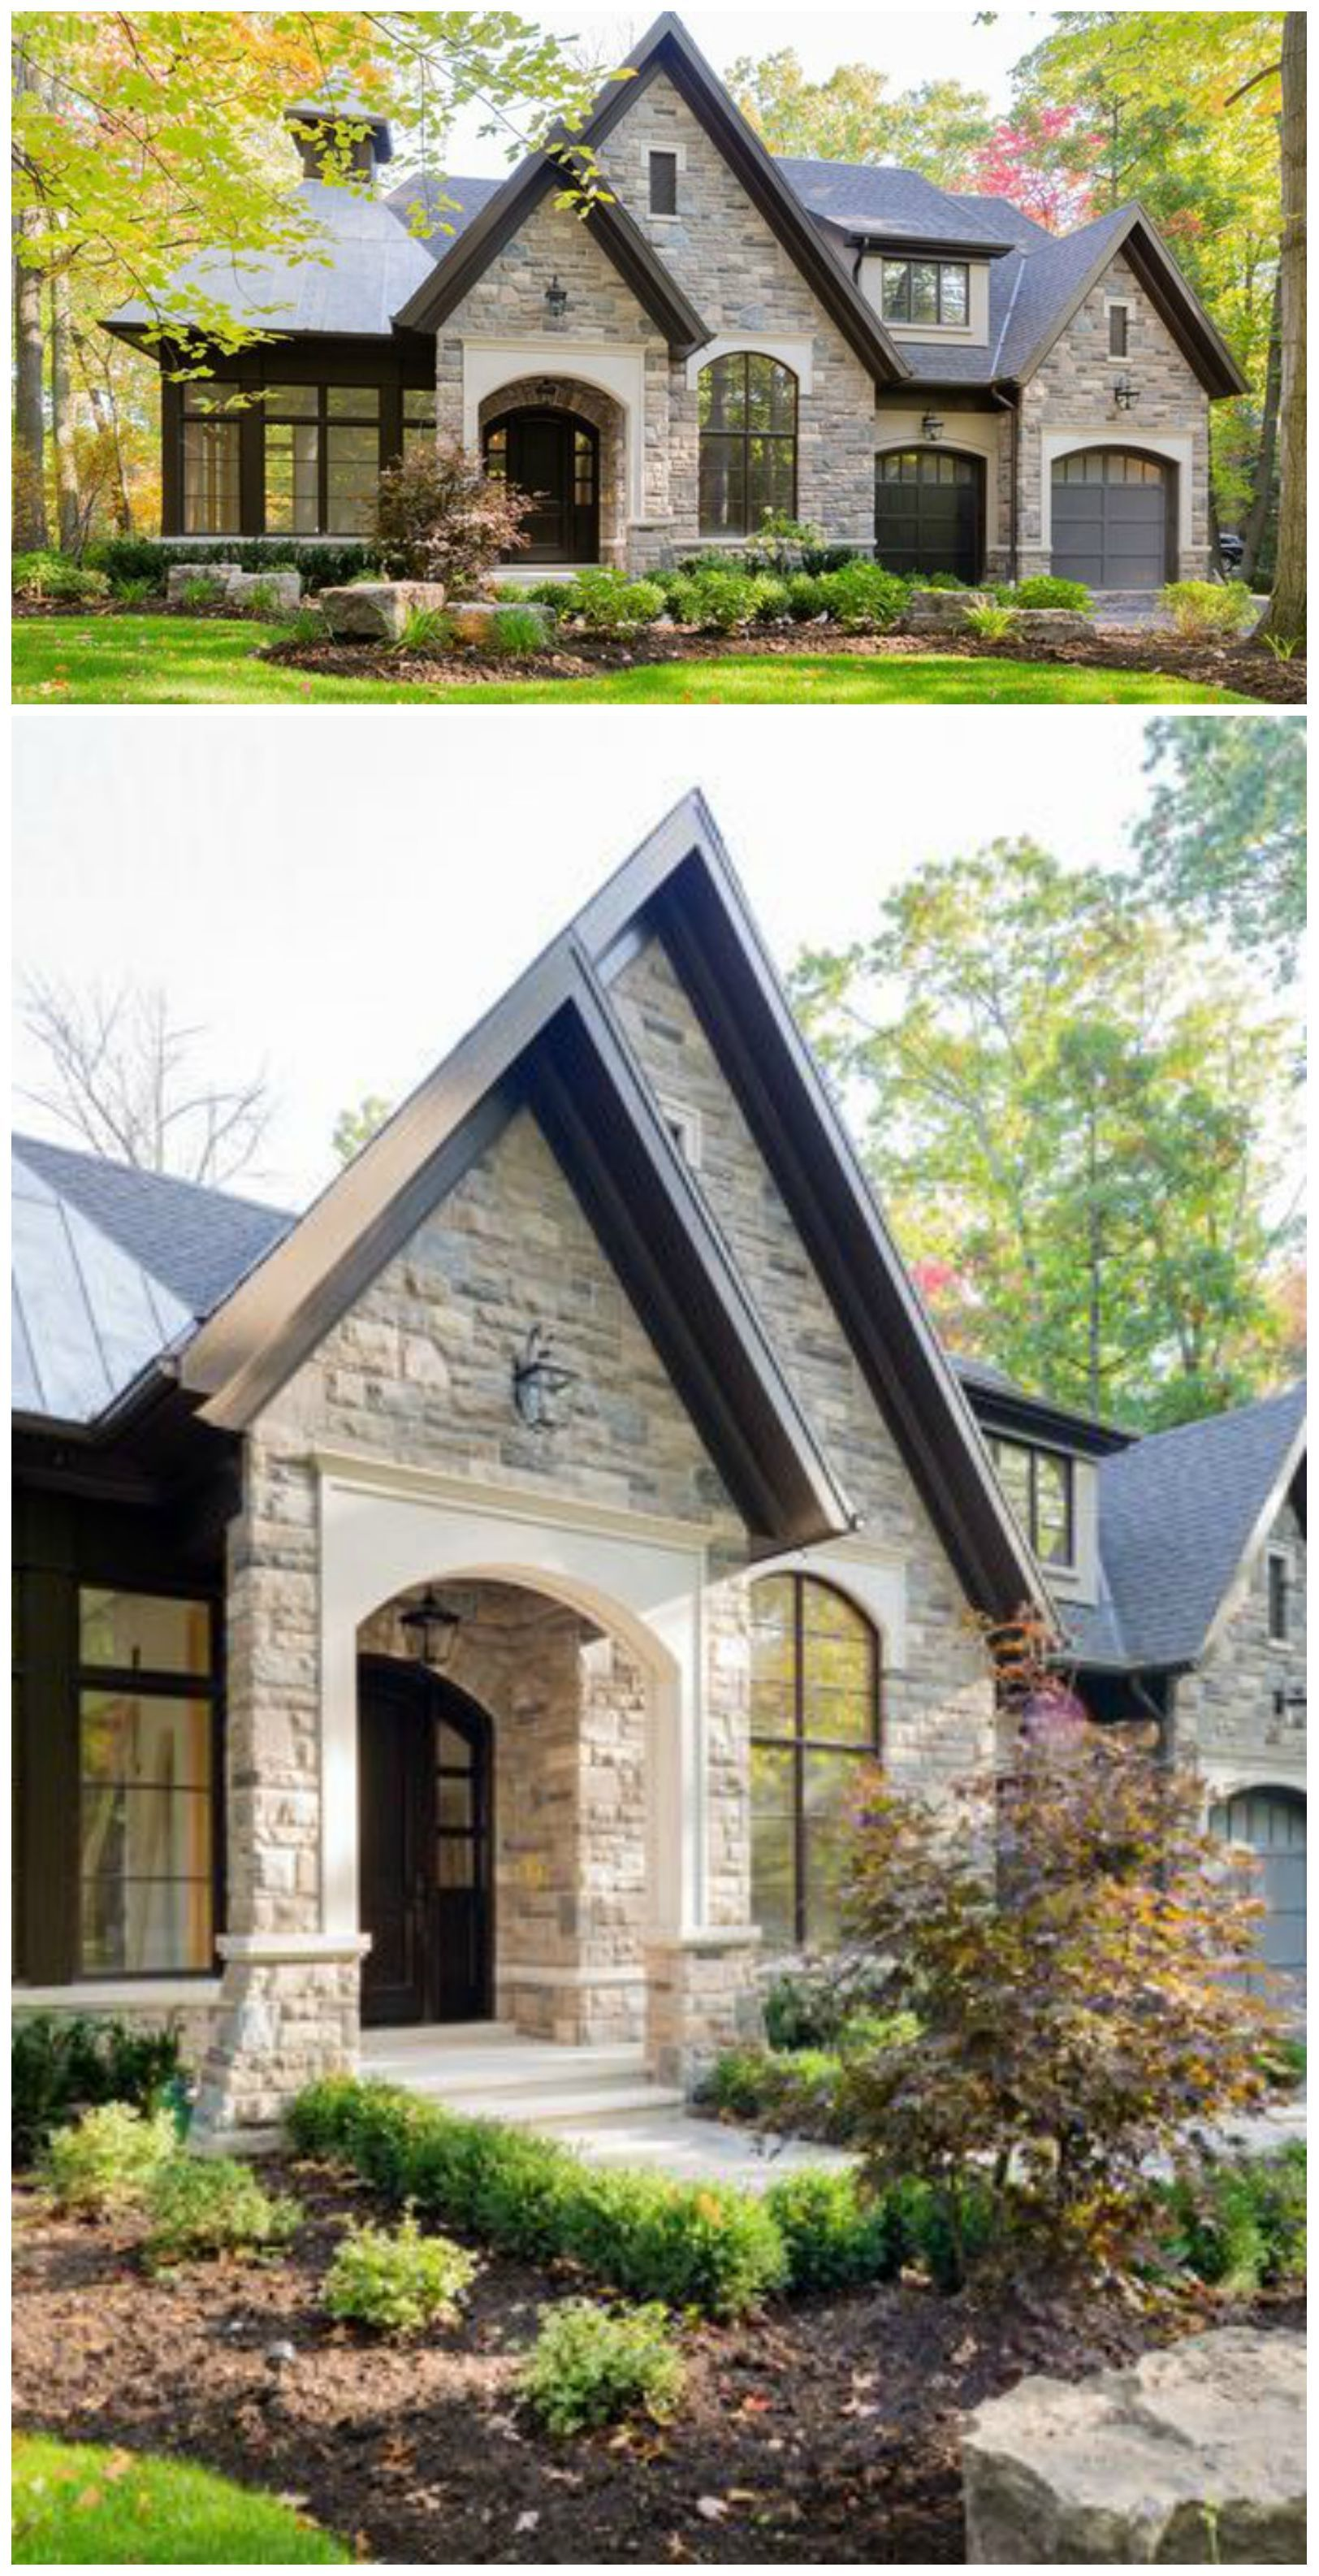 Beautiful Home By David Small Designs Exterior Envy Pinterest